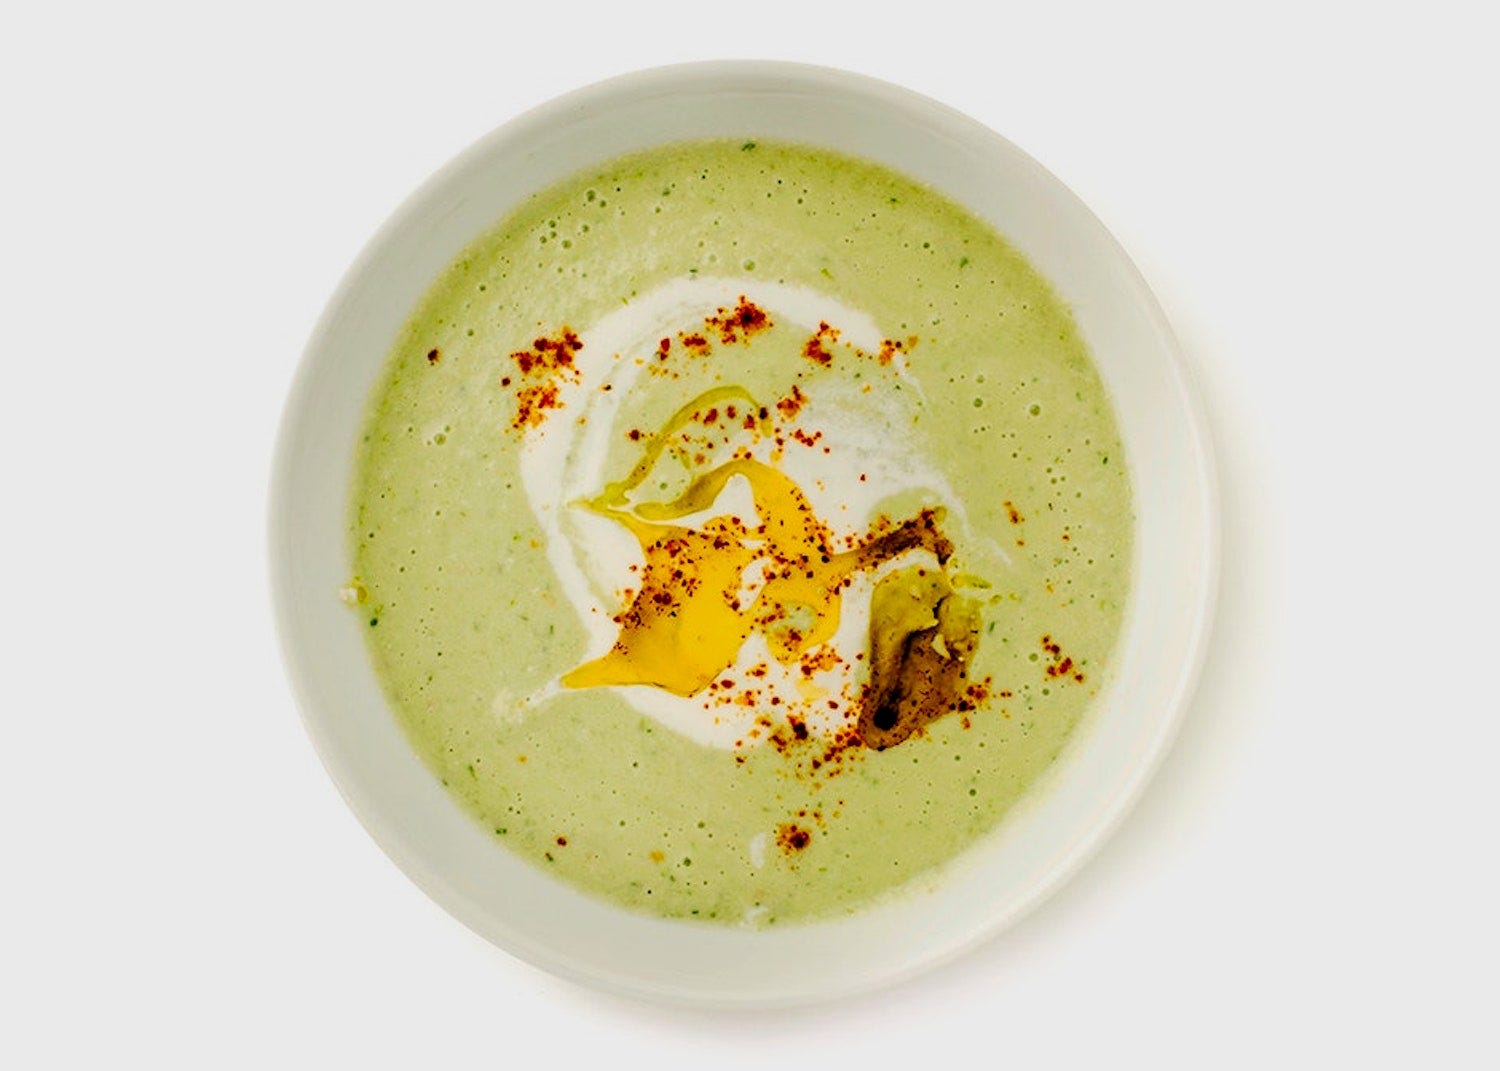 Overhead view of a bowl of green gazpacho